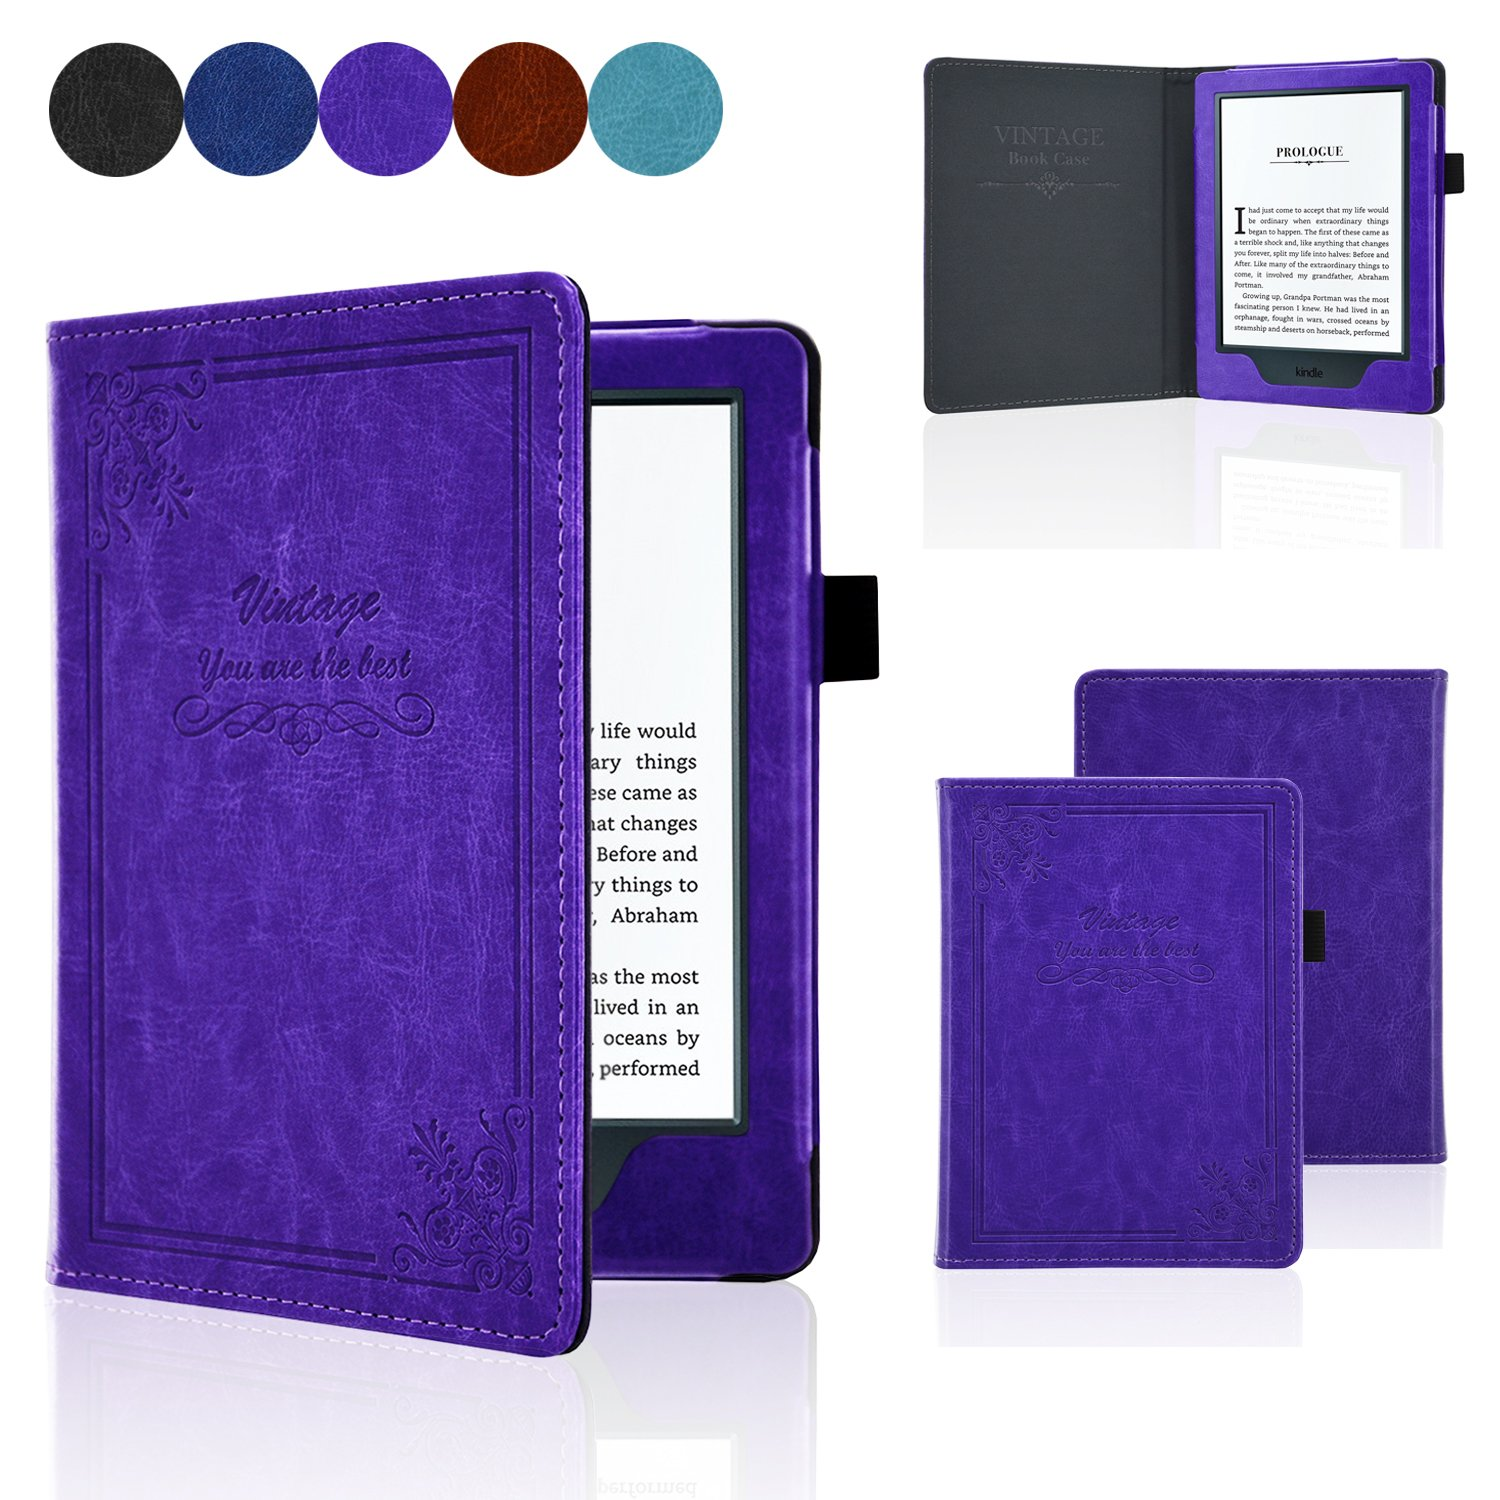 Cover for Kindle Protective and Form Fitting Case for All-New Kindle - Magenta 8th Generation, 2016